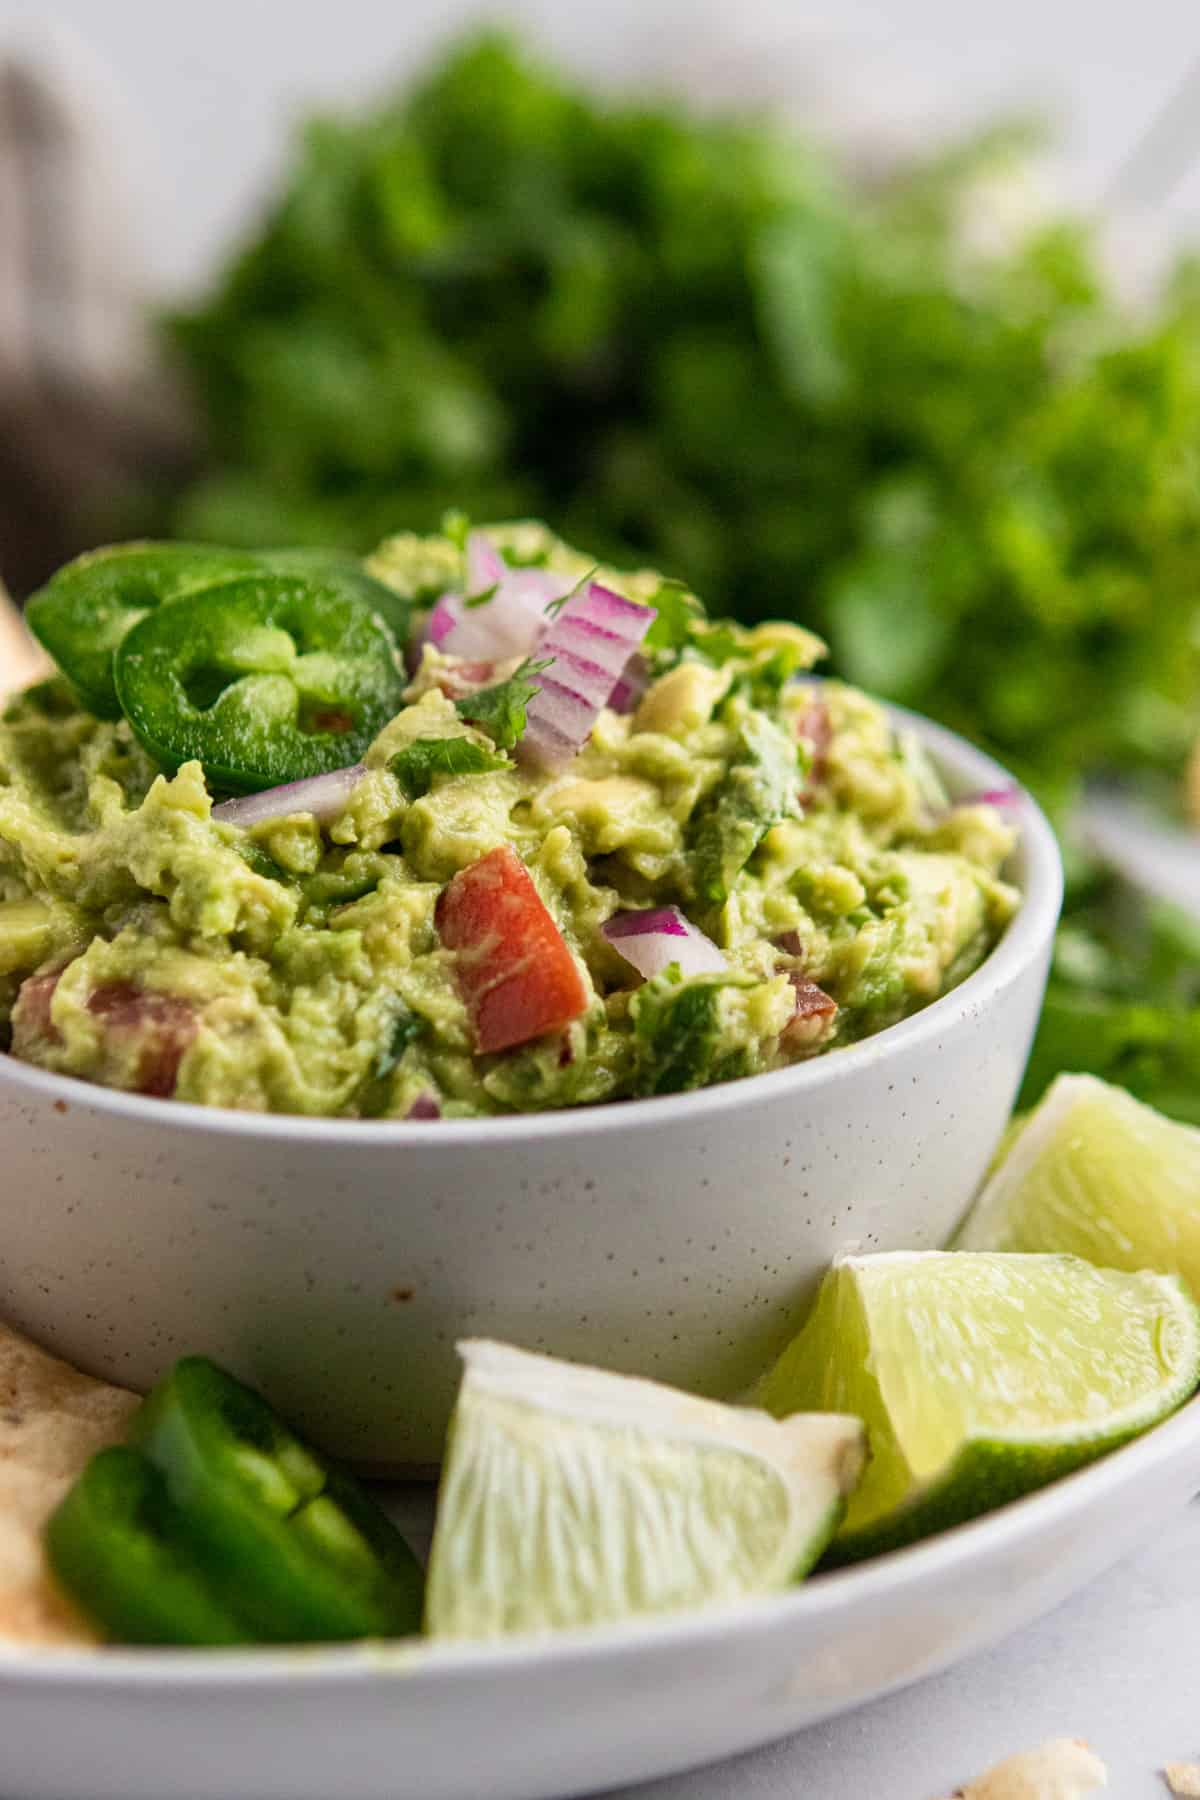 Healthy guacamole recipe on plate with limes.